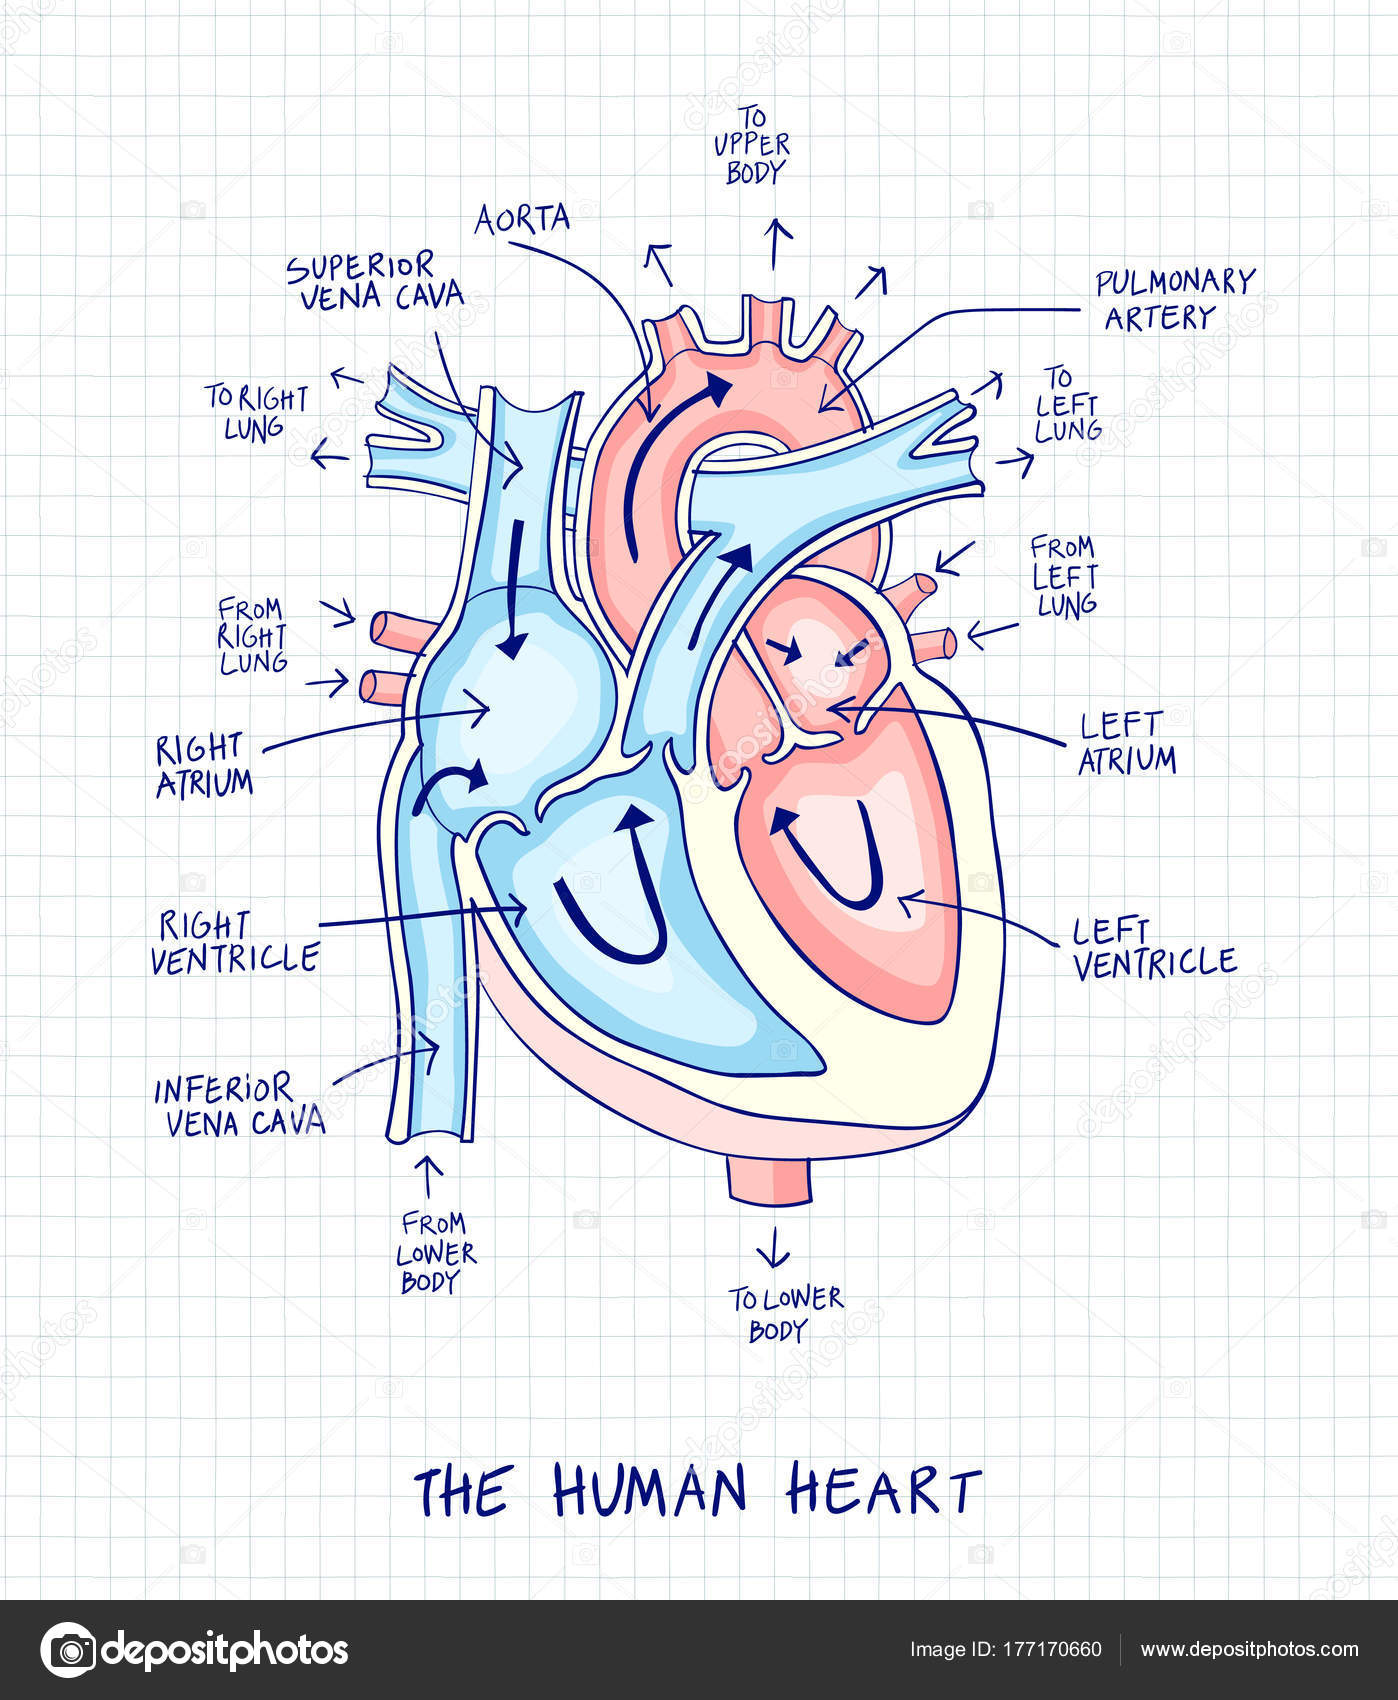 Sketch of human heart anatomy line and color on a checkered bac sketch of human heart anatomy line and color on a checkered background educational diagram with hand written labels of the main parts ccuart Choice Image